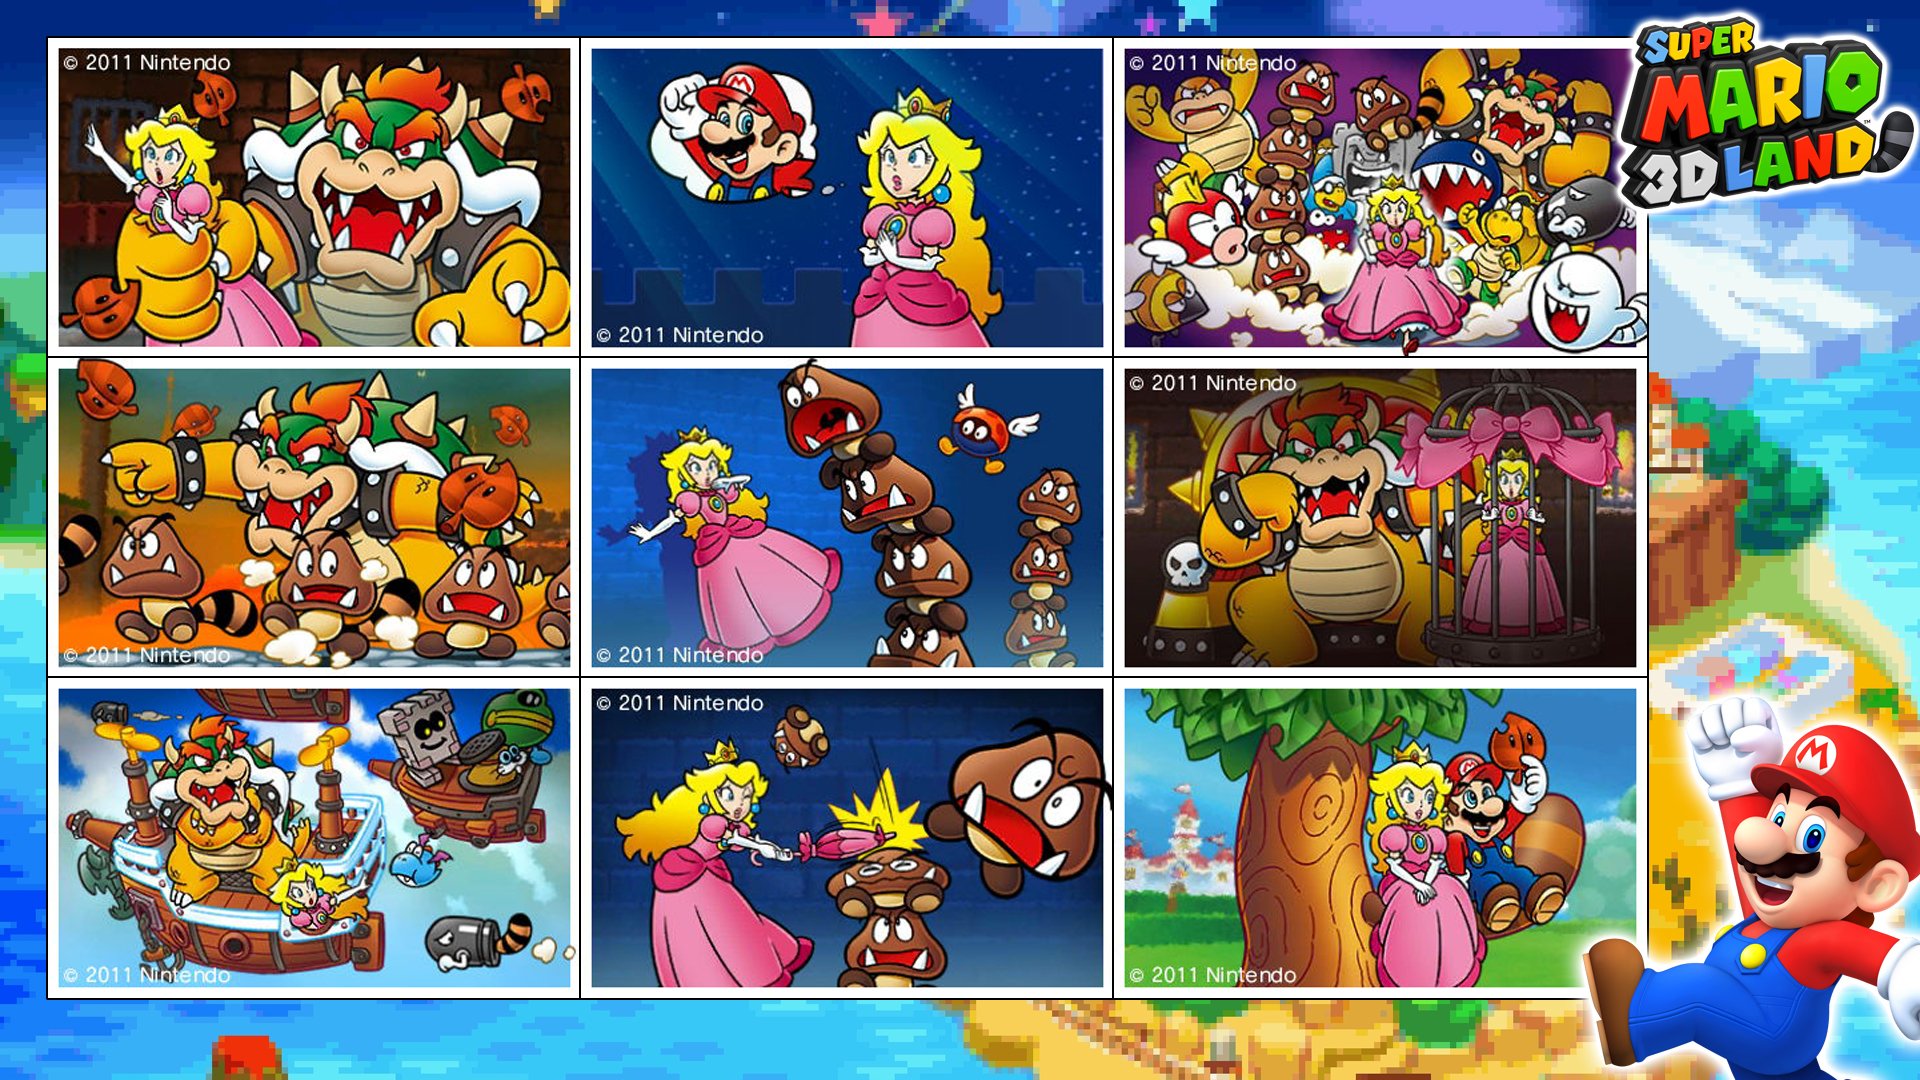 Super Mario 3d Land Photo Album By Asylusgoji91 On Deviantart